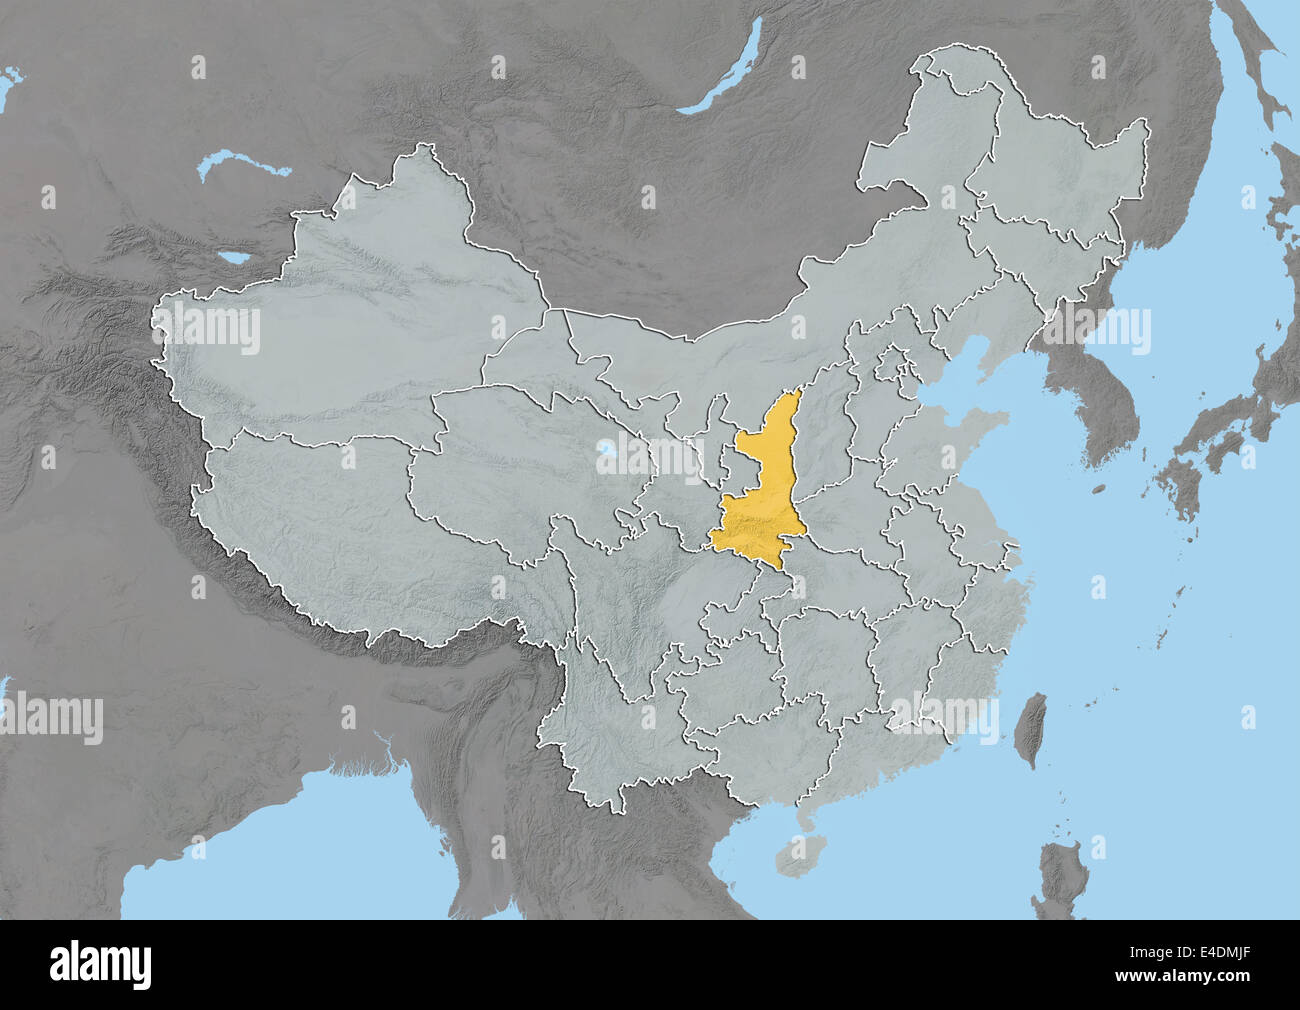 Shaanxi map stock photos shaanxi map stock images alamy province of shaanxi china relief map stock image gumiabroncs Images